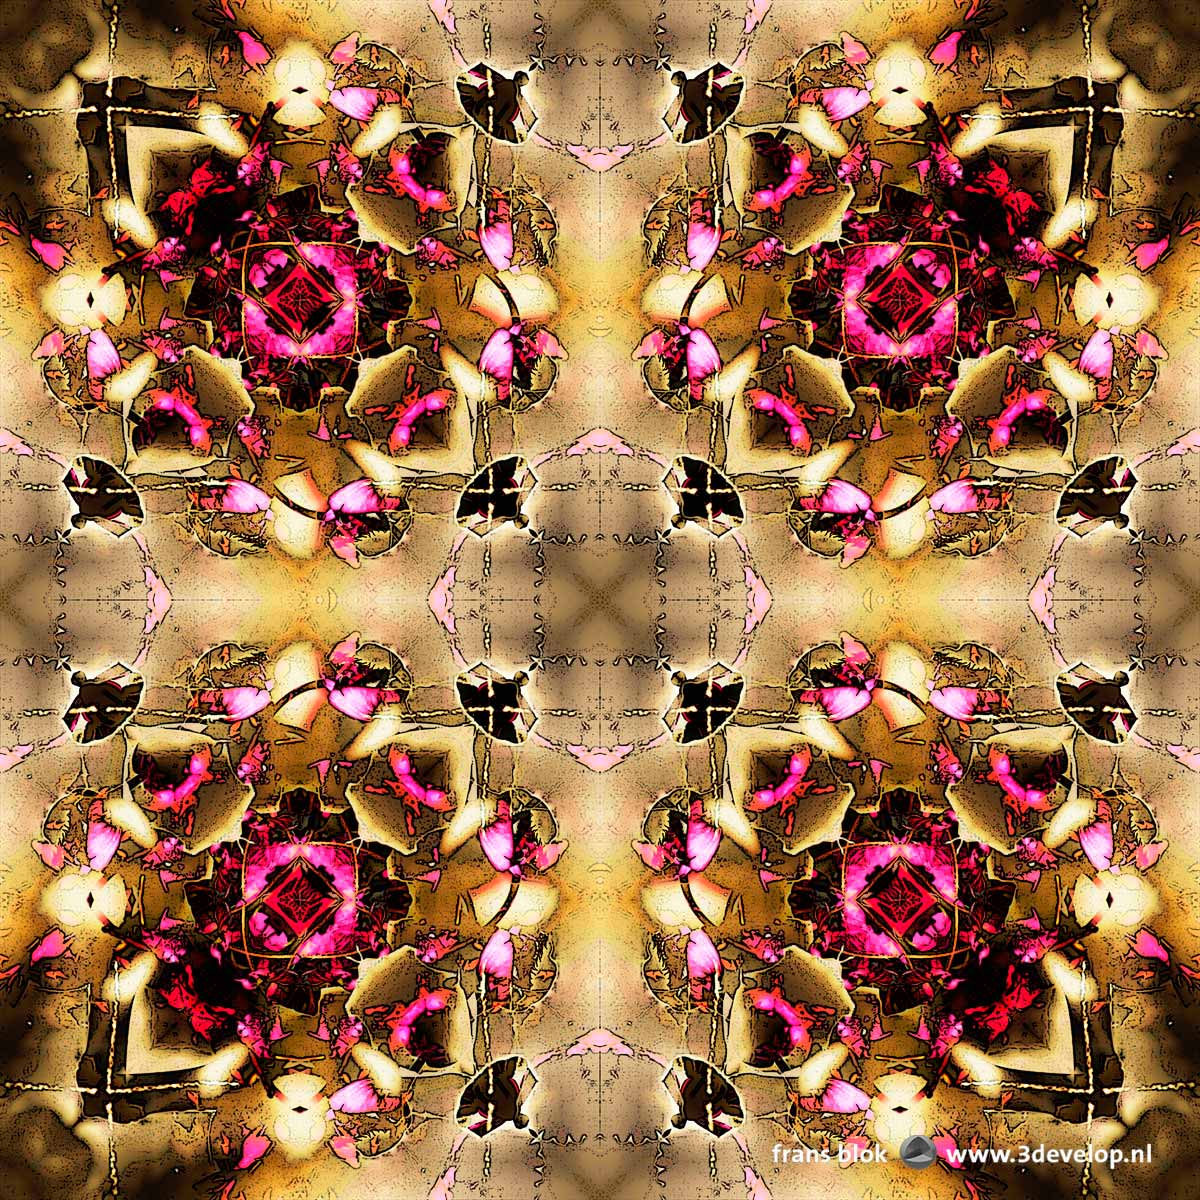 A kaleidoscopic, symmetric, abstract image in brown and purple hues, based on a photograph of a flowering cherry tree in springtime